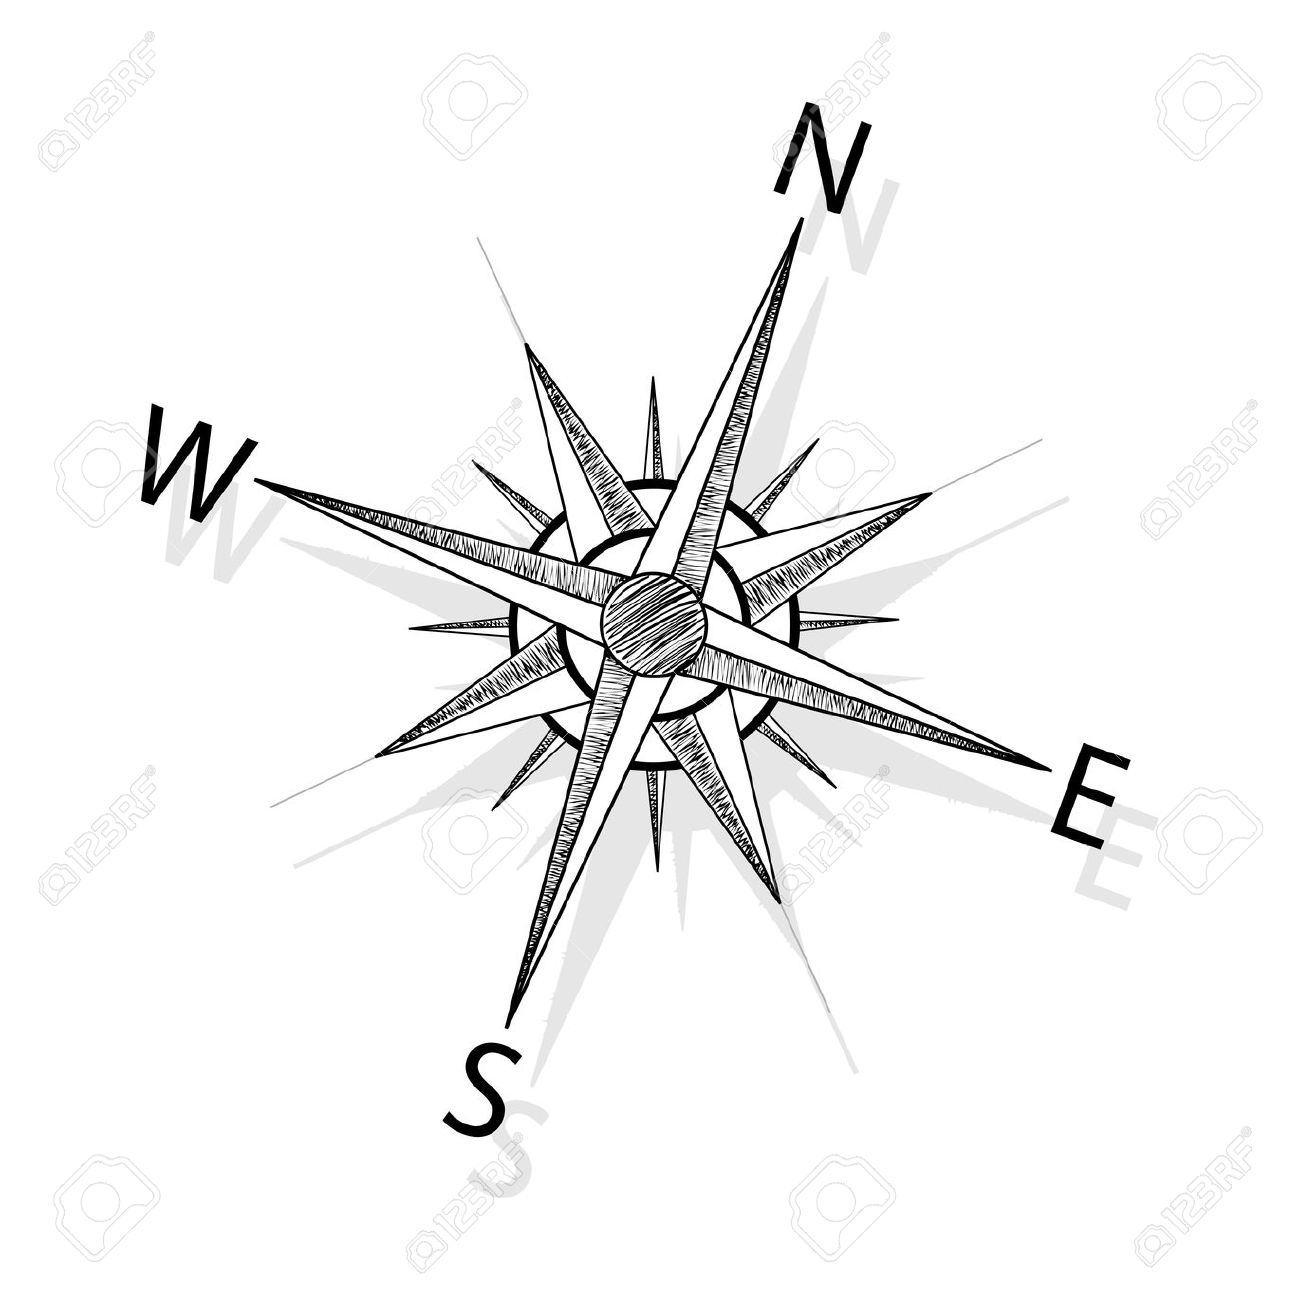 1300x1300 Drawing A Compass Rose Drawings, Compass Rose And Rose Drawings